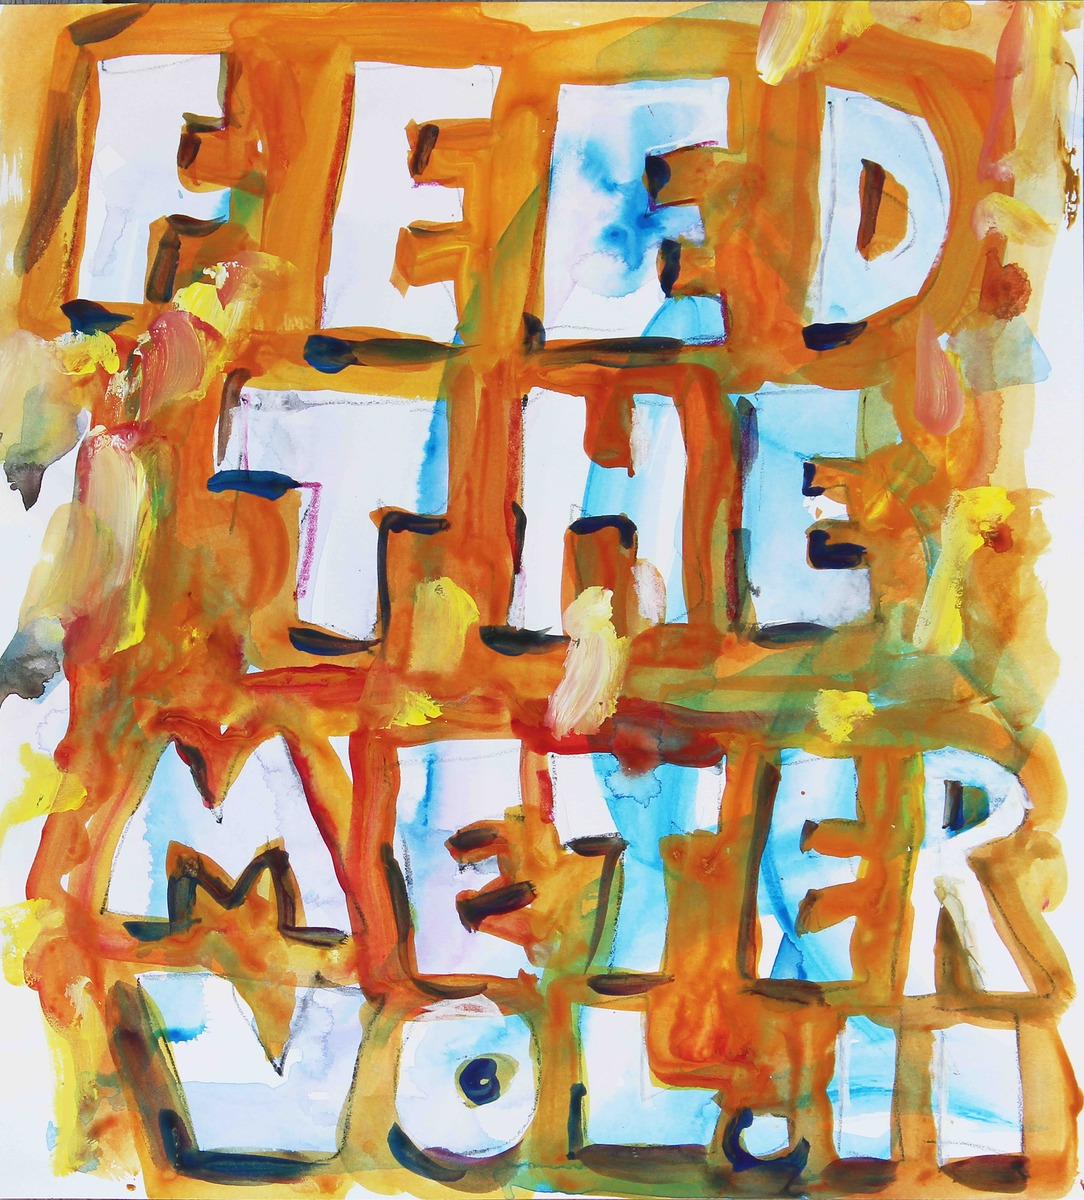 Feed the Meter